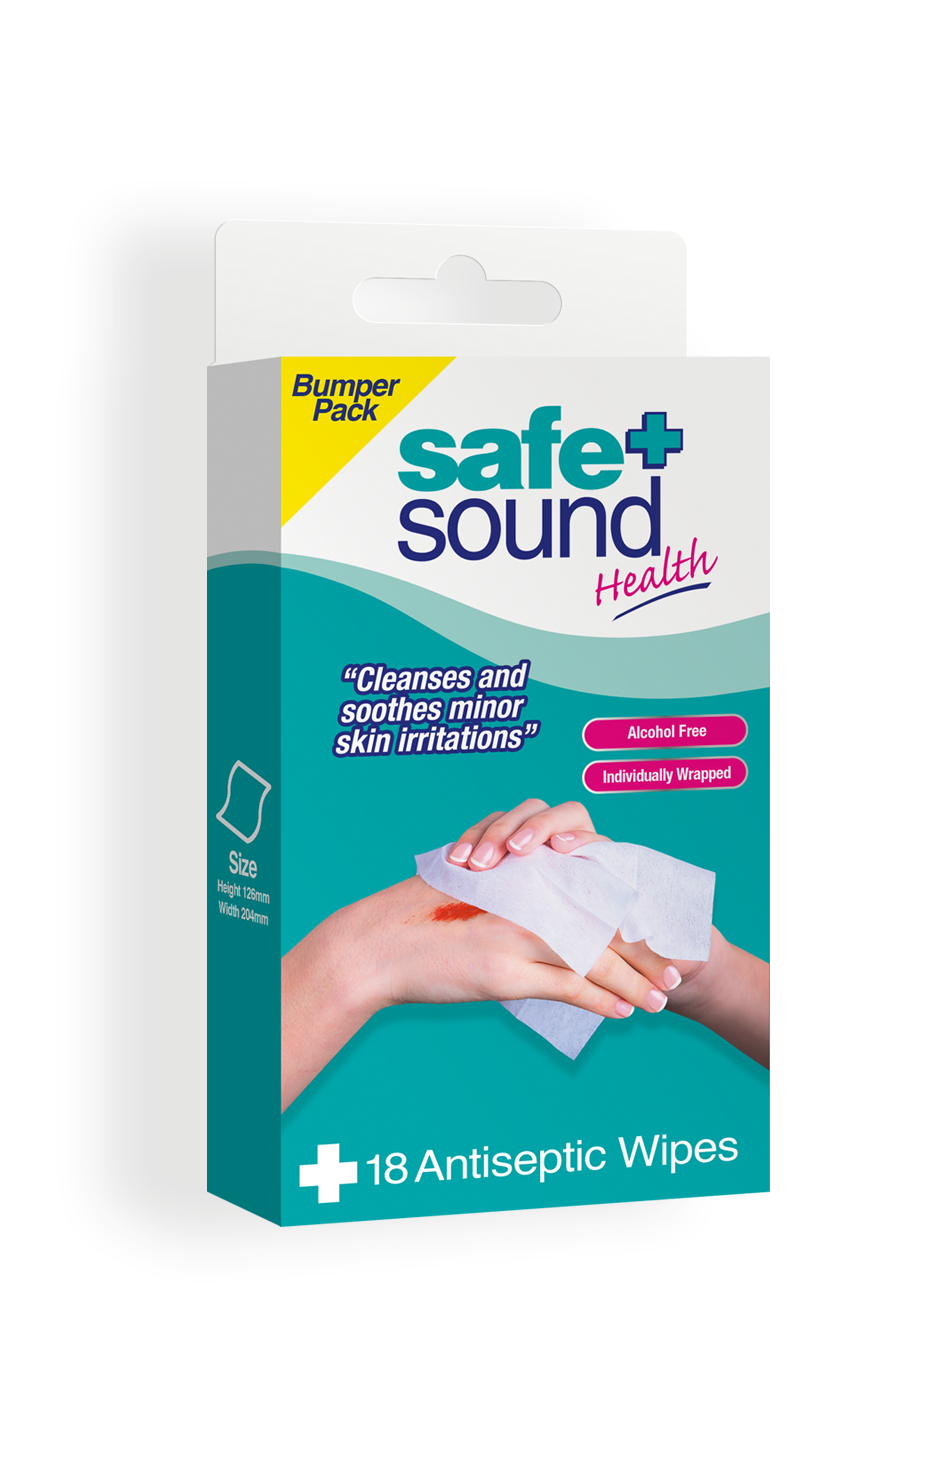 Safe and Sound Health Antiseptic Wipes Bumper Pack